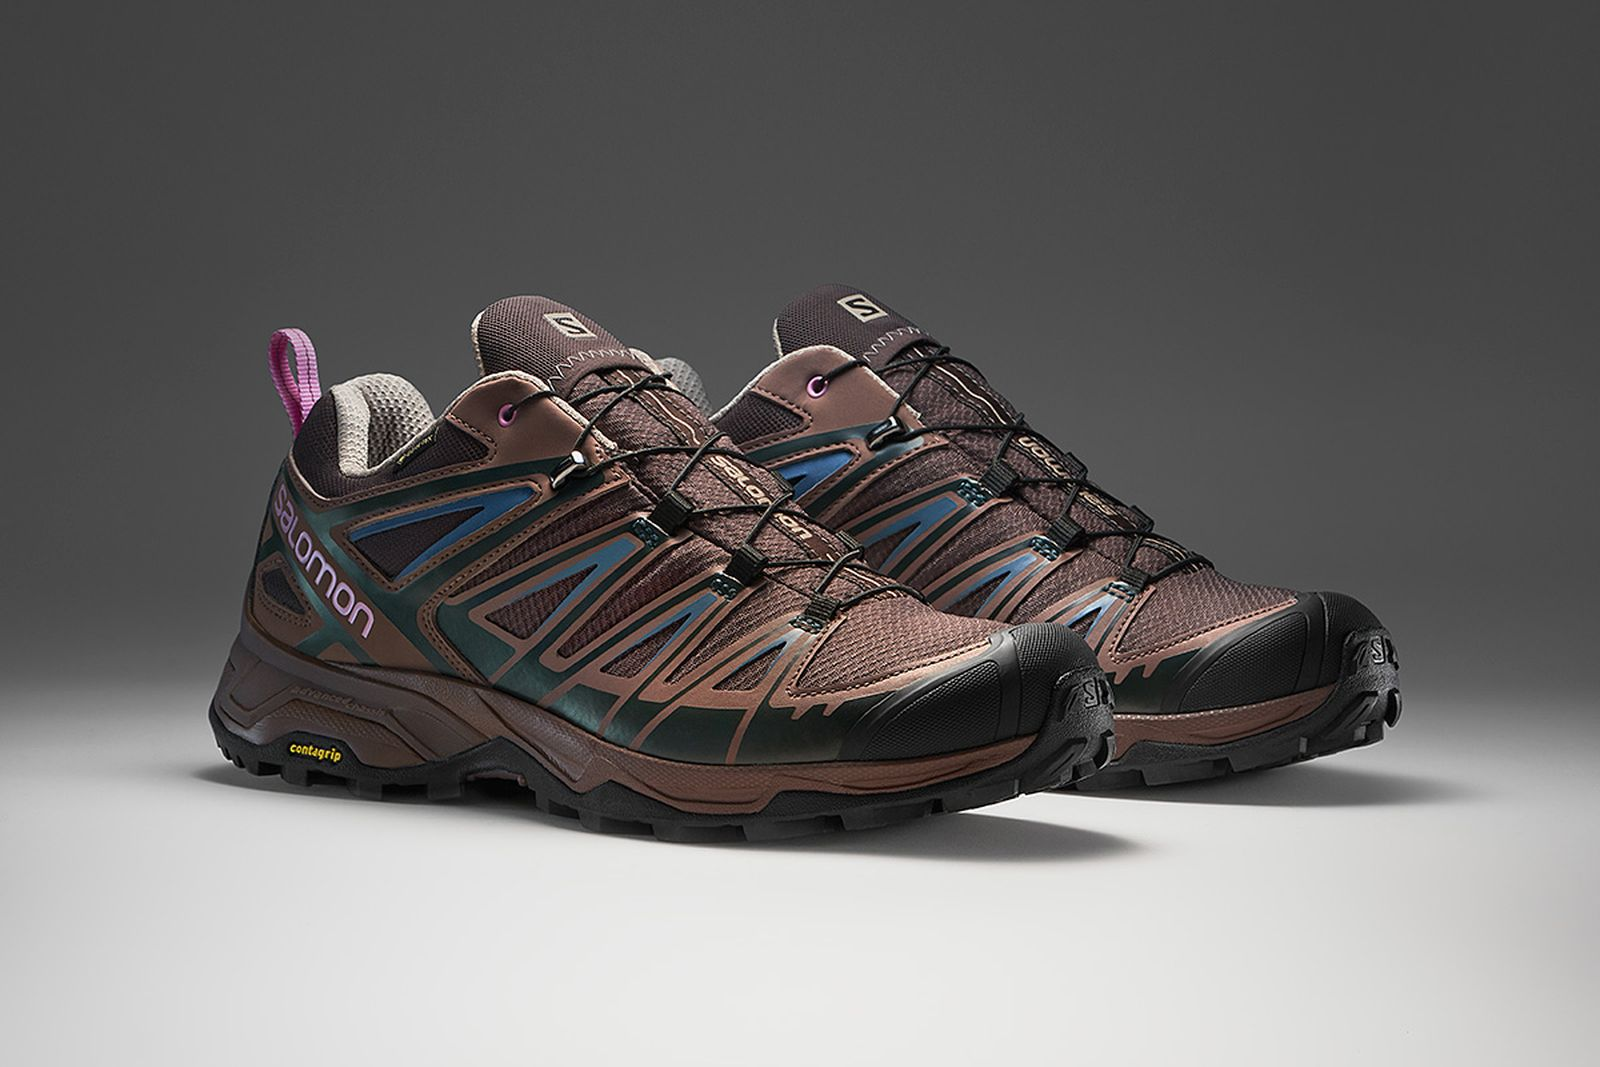 better-gift-shop-salomon-x-ultra-3-gtx-release-info-04